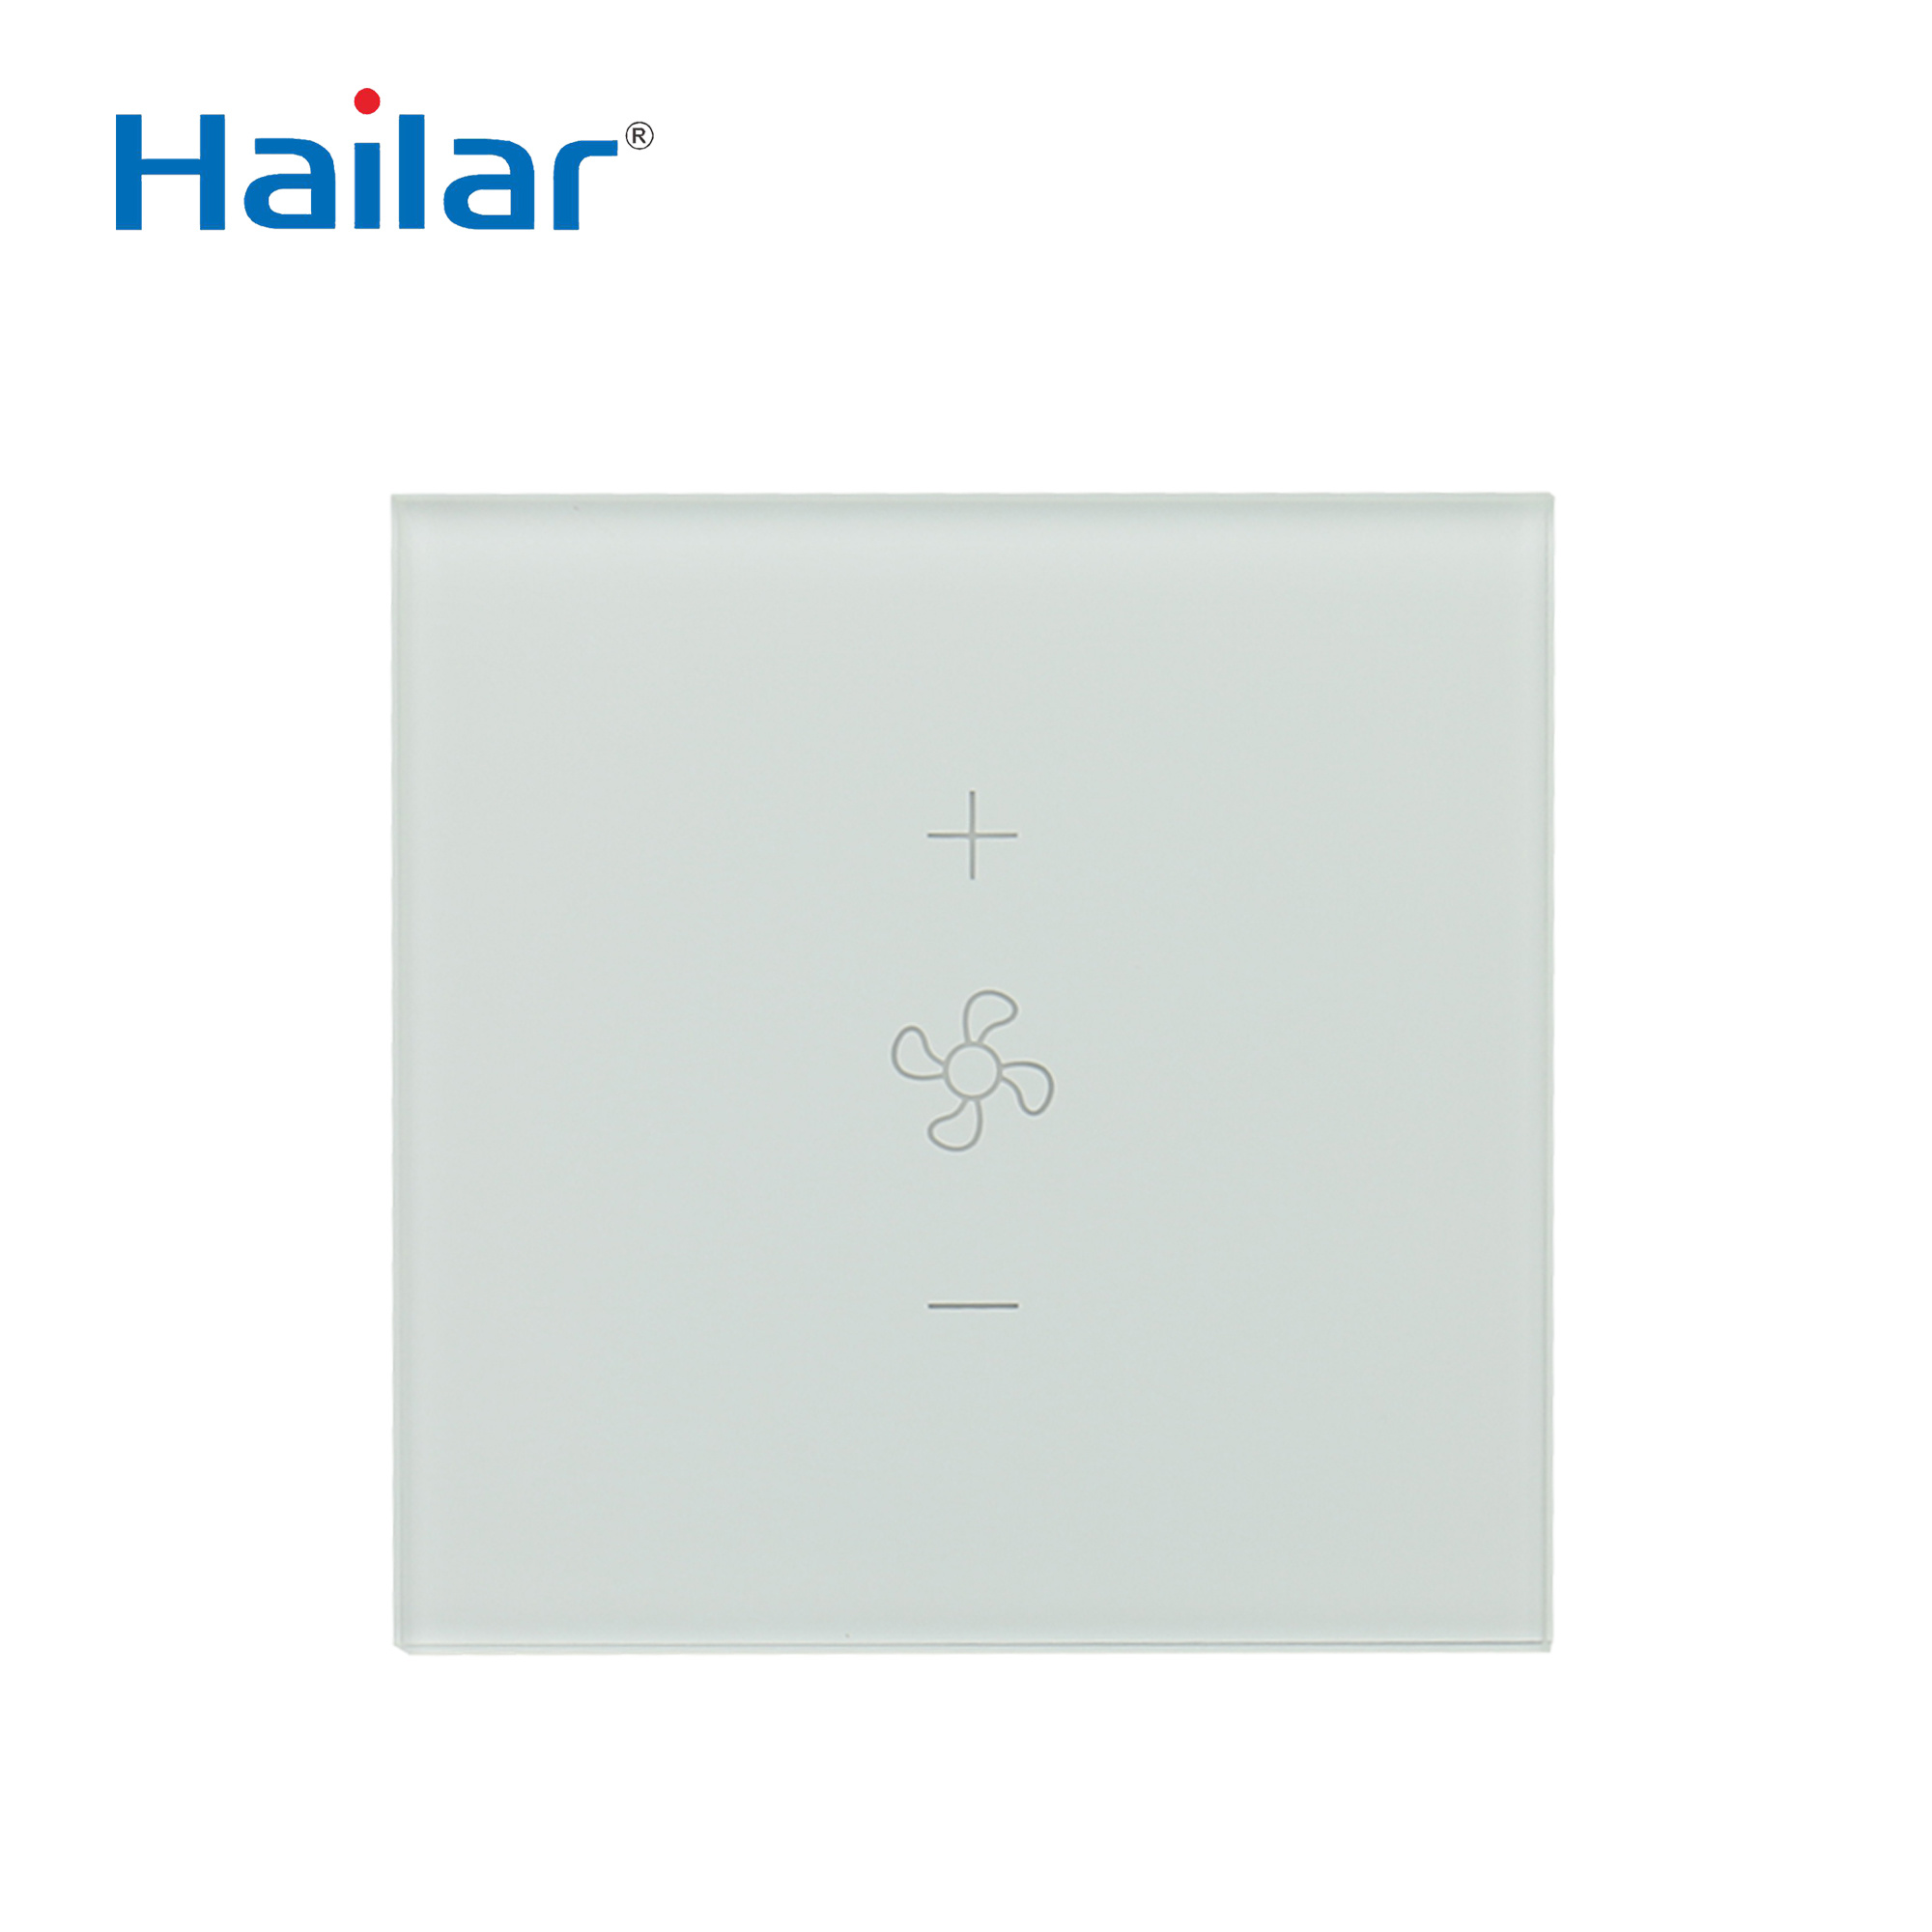 Hailar Smart Fan Switch European Wireless Fan Speed Switch pictures & photos